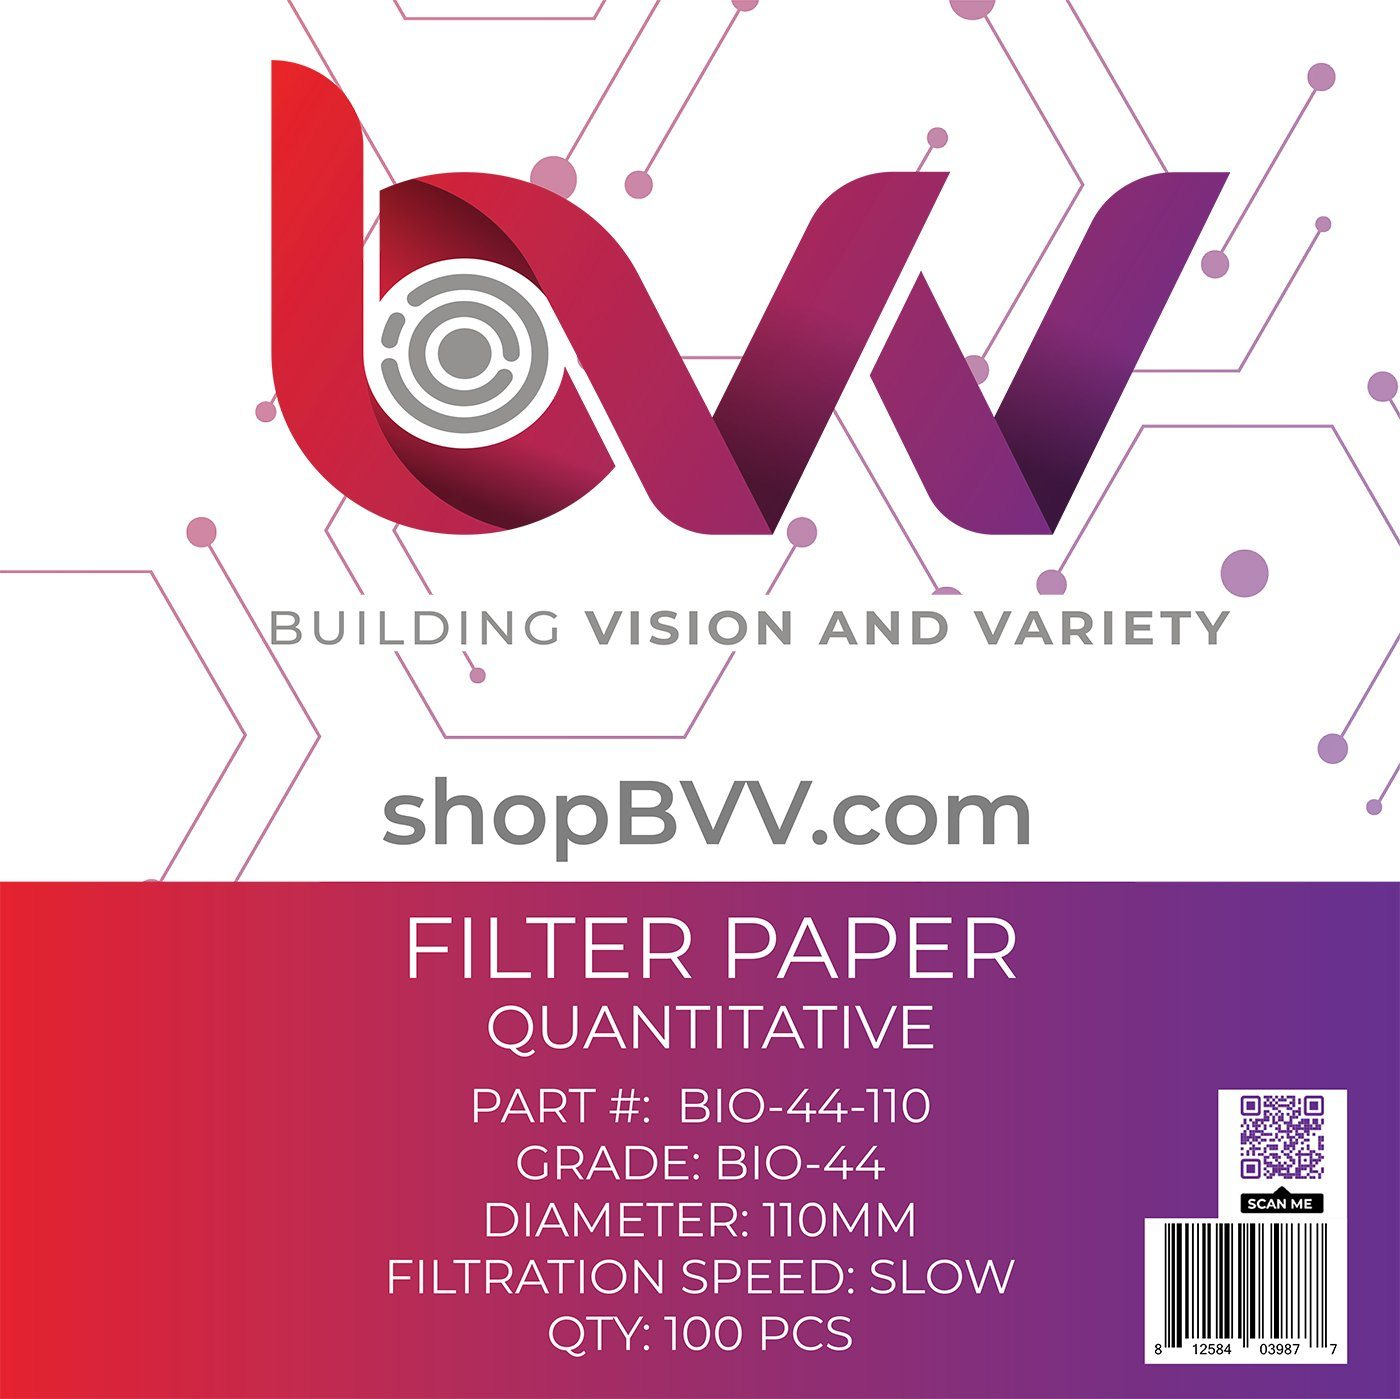 2.5um Quantitative BVV Ashless Filter Papers Slow Grade 42 110 Millimeter